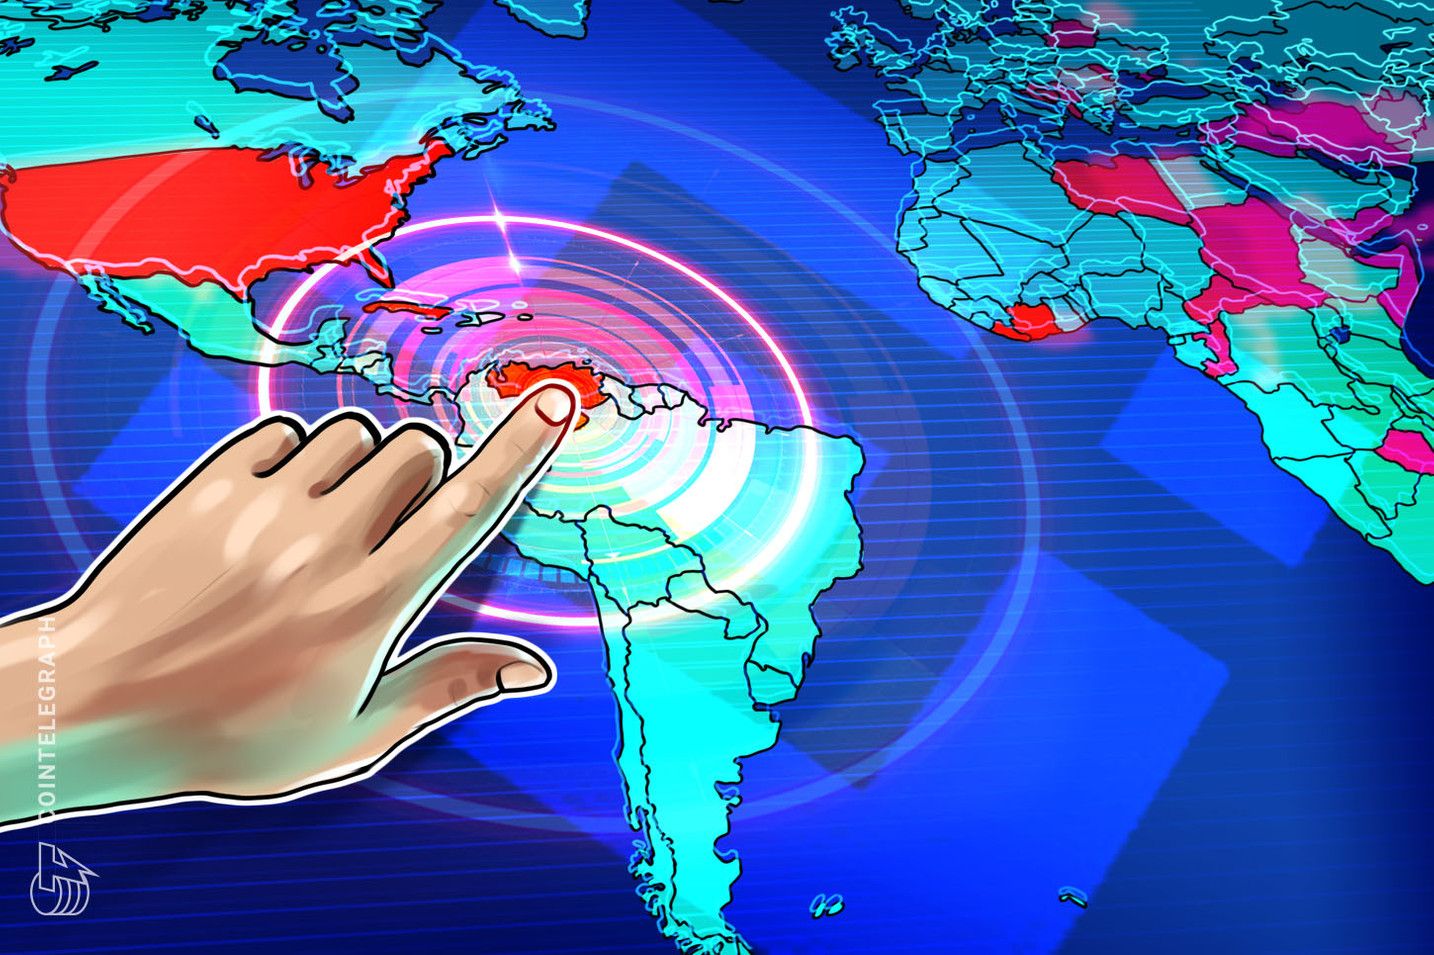 Markus Hammer's view in Cointelegraph: Binance and Tether an unholy alliance, forcing regulators to act?